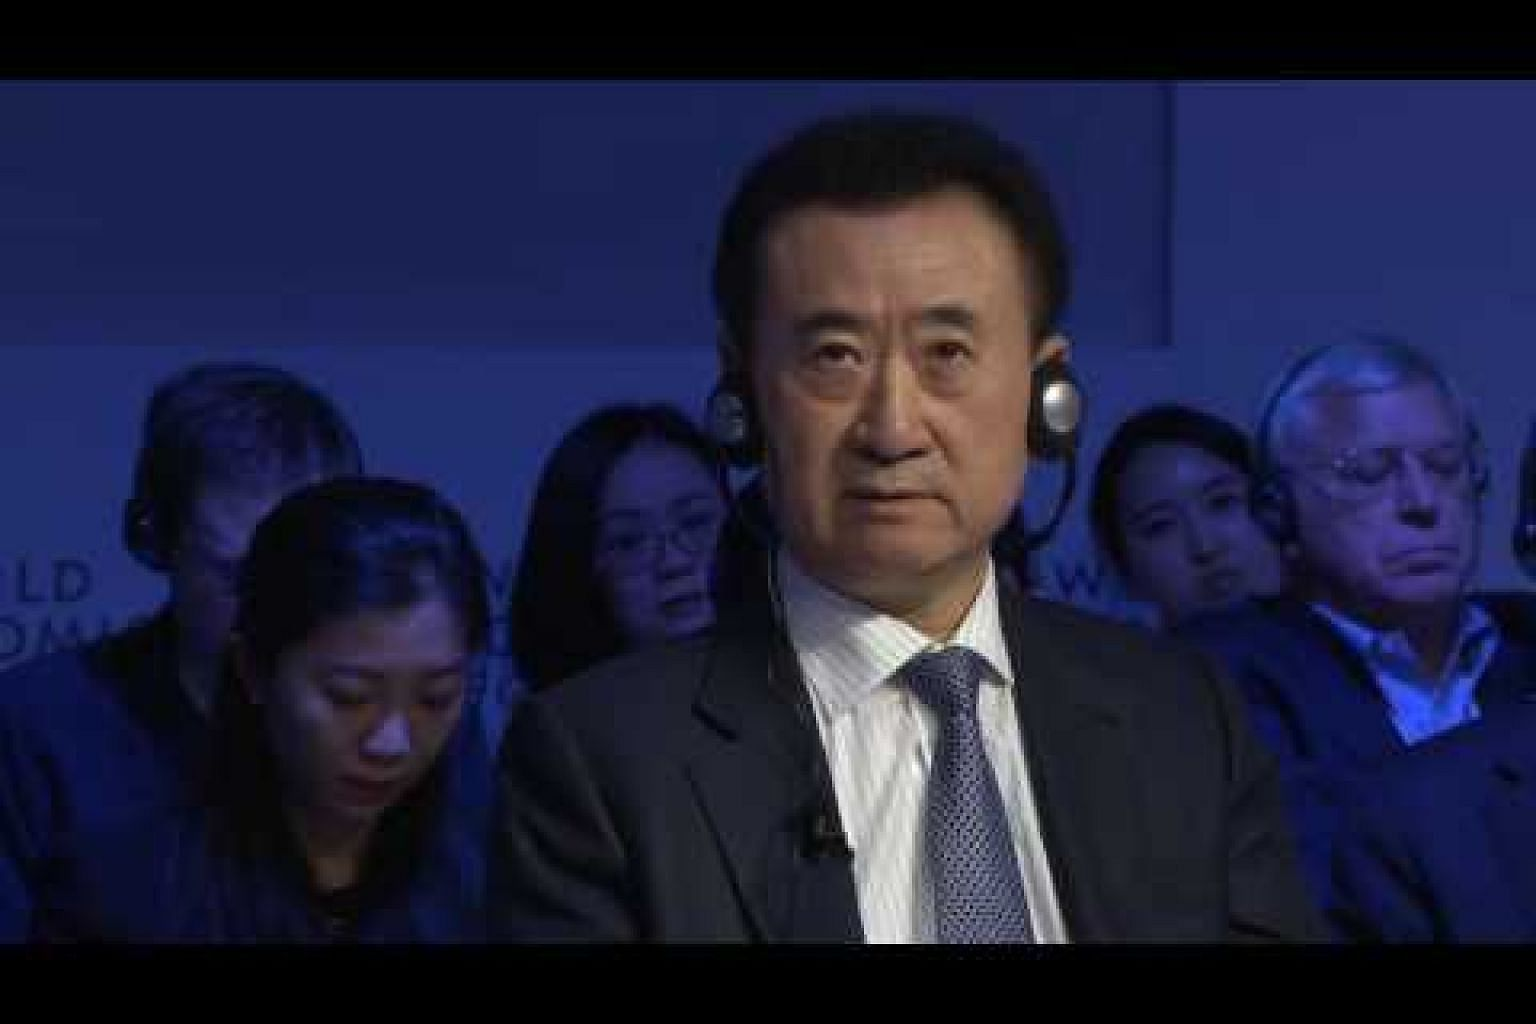 Davos 2017 - An Insight, An Idea with Wang Jianlin